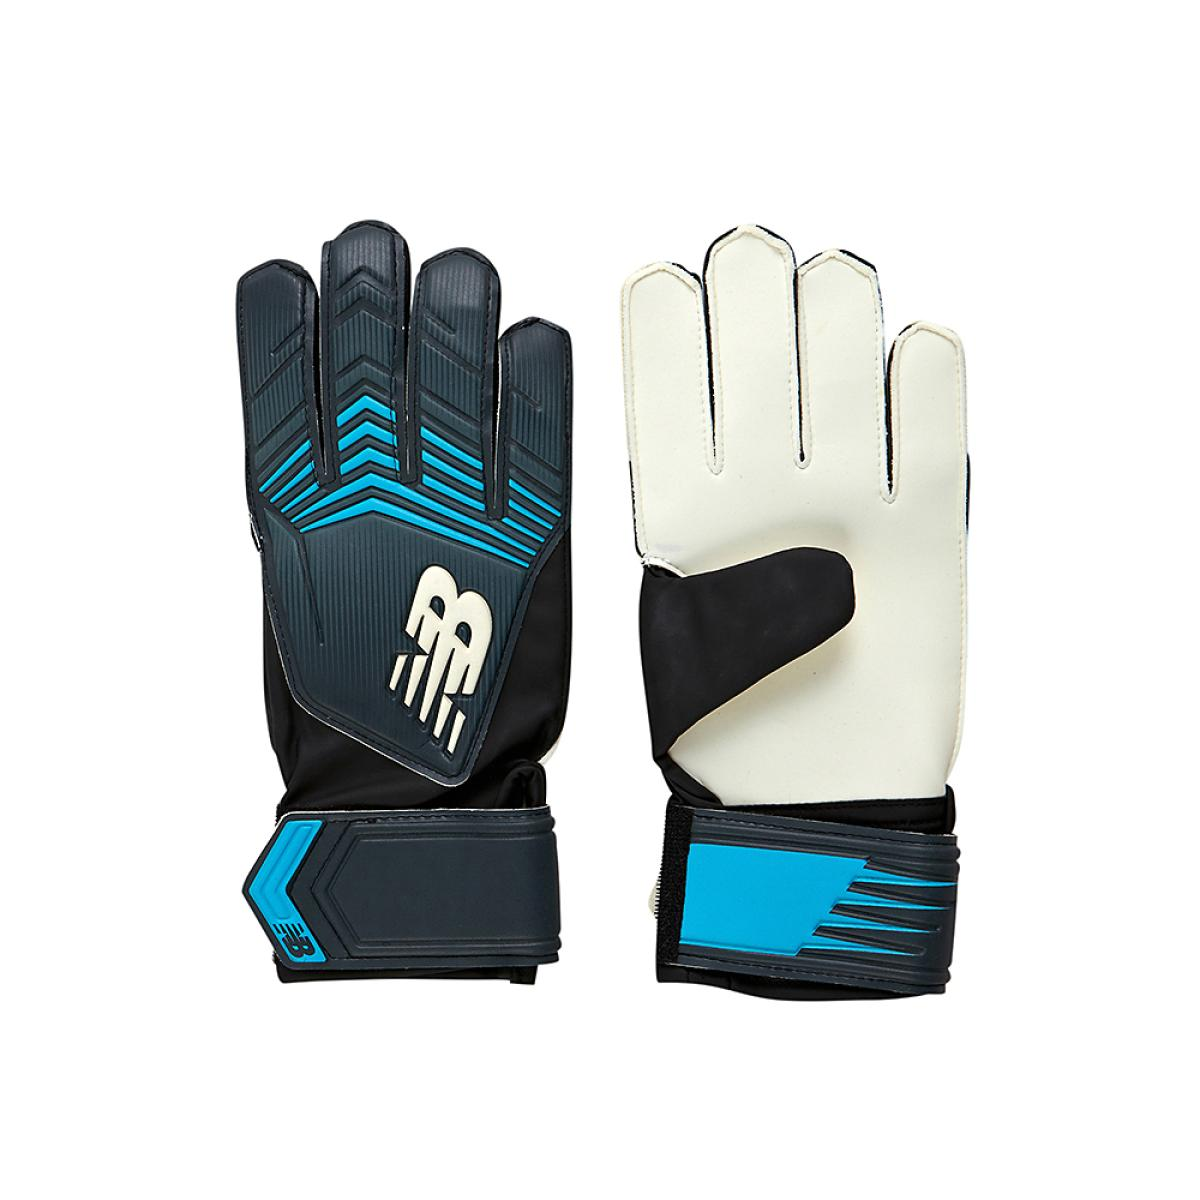 NB DISPATCH FP GK GLOVES